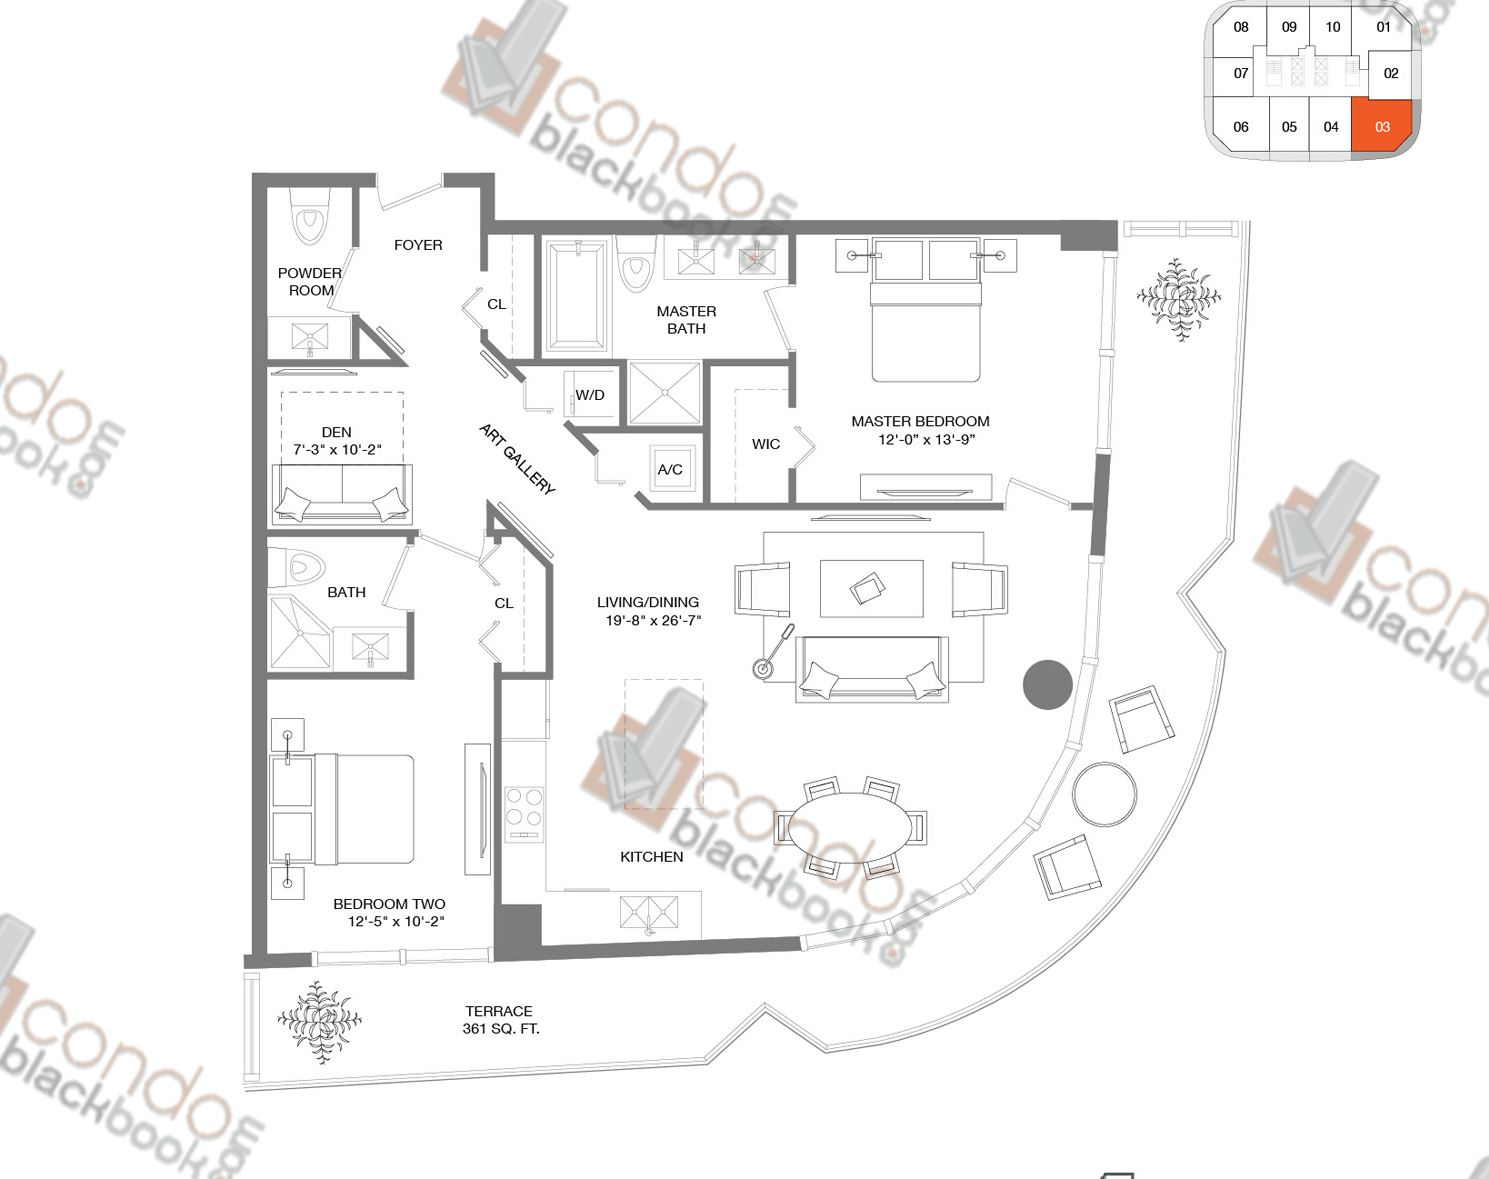 Floor plan for Brickell Heights East Tower Brickell Miami, model Residence 03, line 03, 2/2.5+DEN bedrooms, 1,276 sq ft